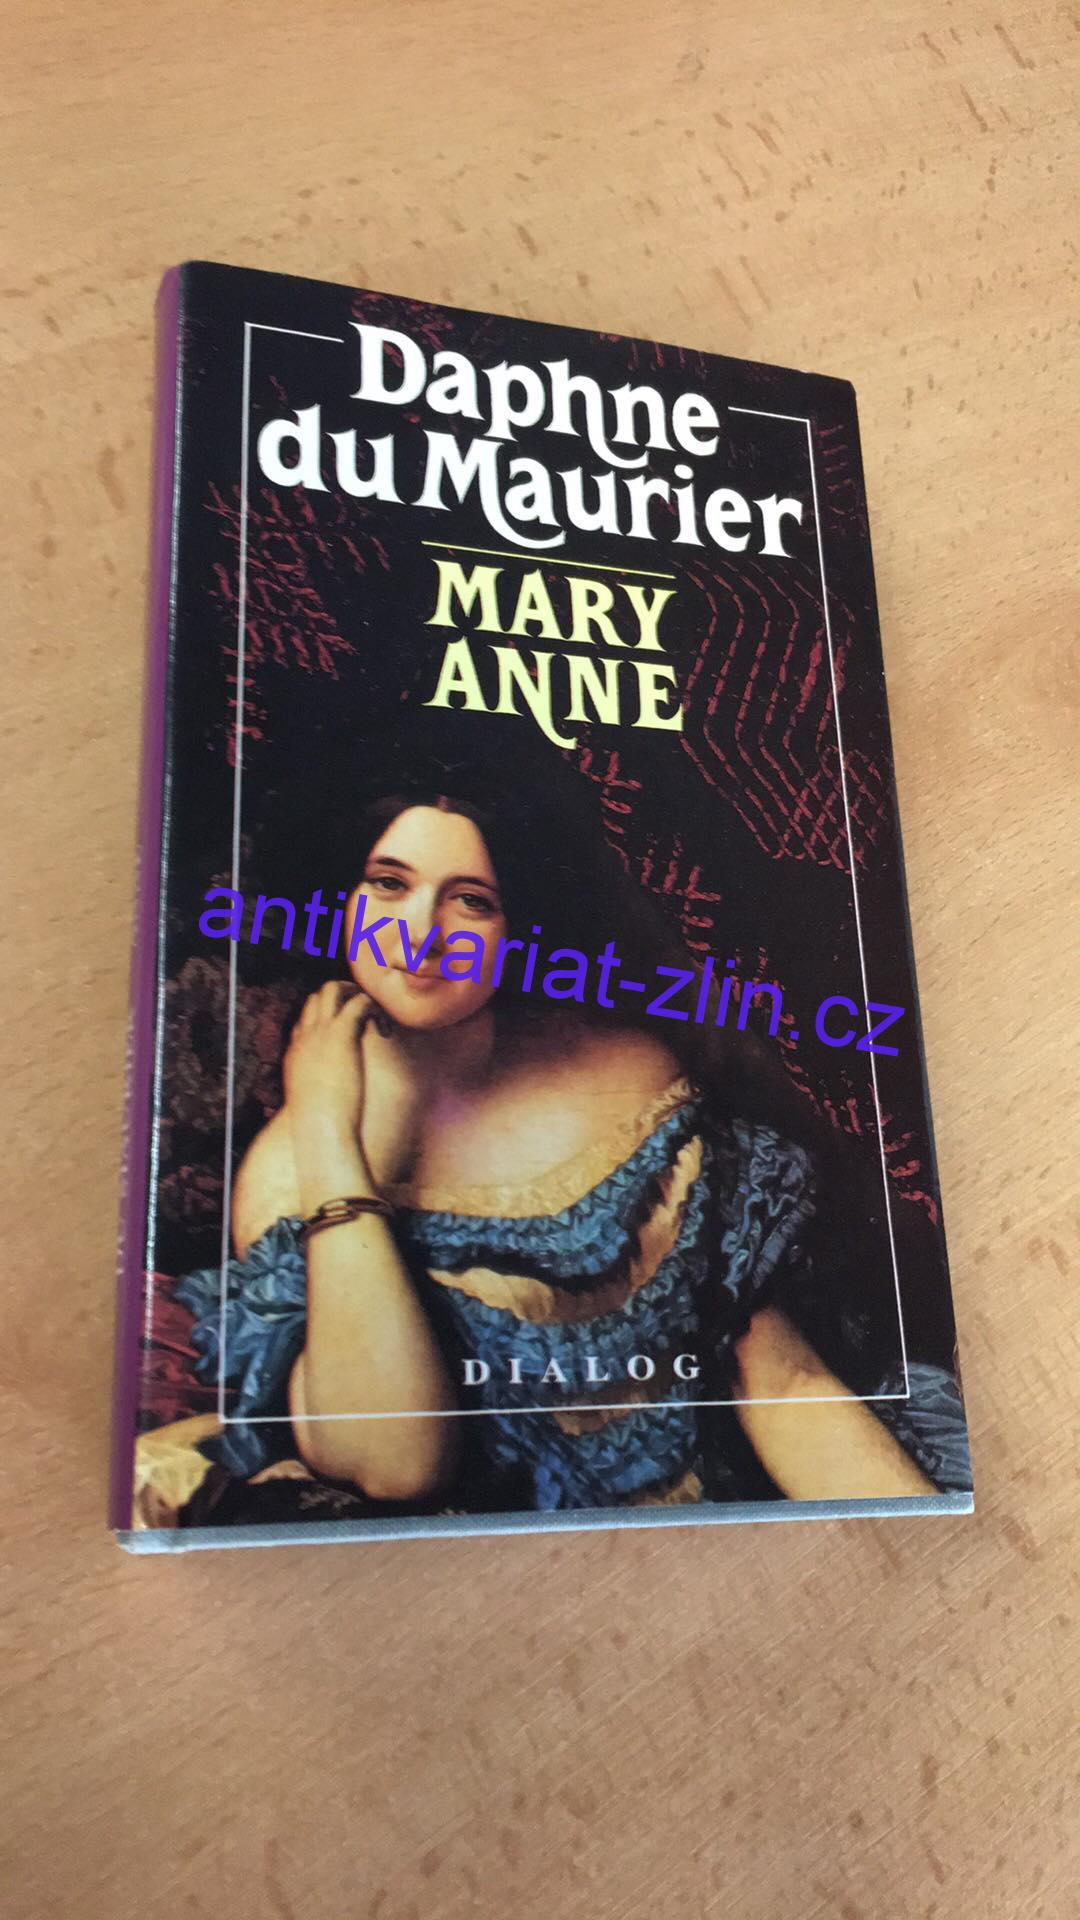 Daphne du Maurier - Mary Anne